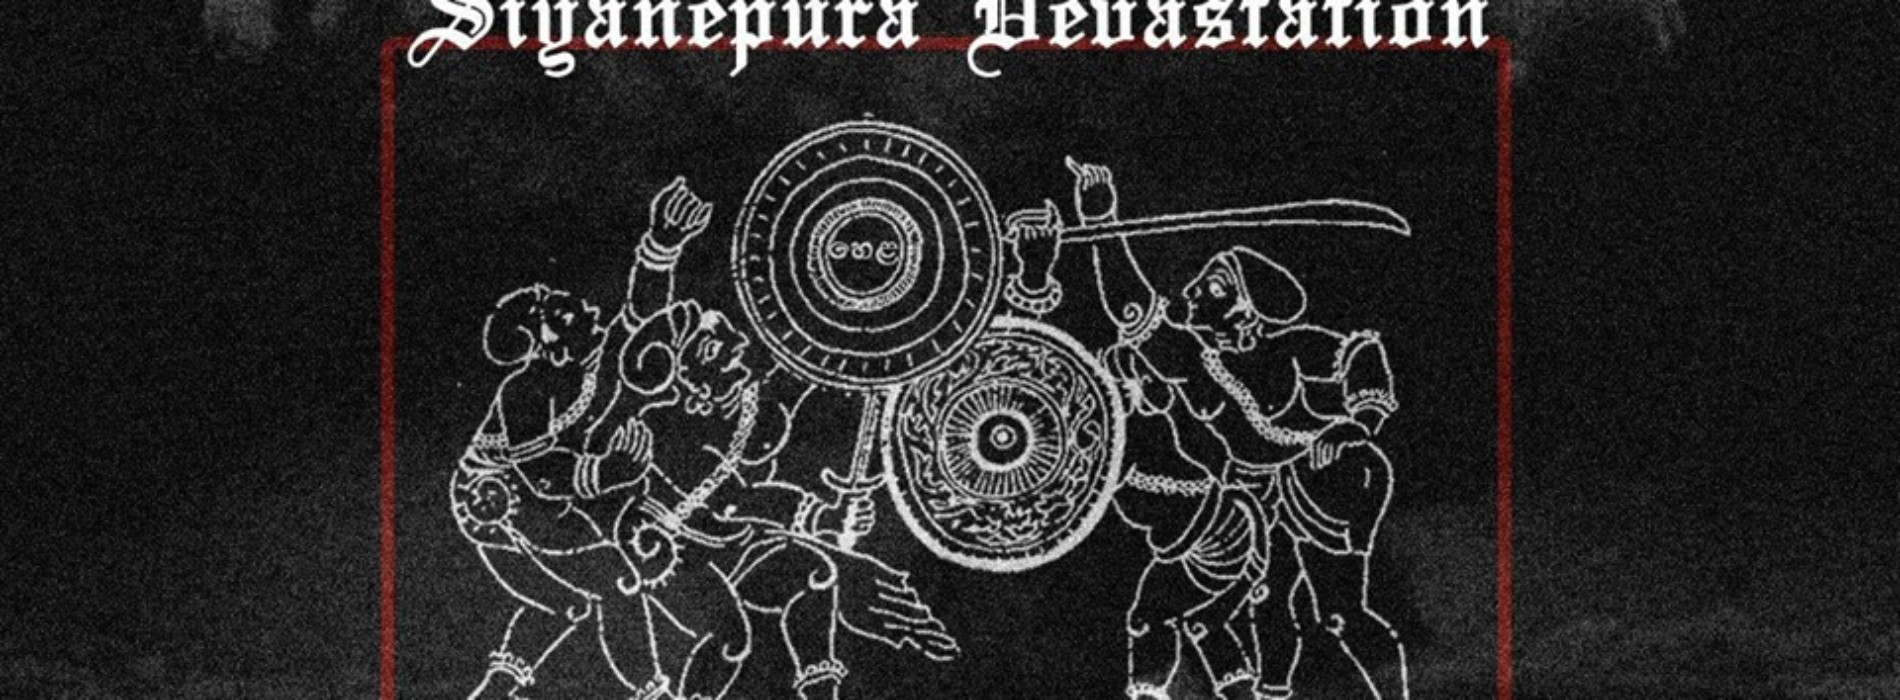 Siyanepura Devastation : Initiation Rites Volume 1